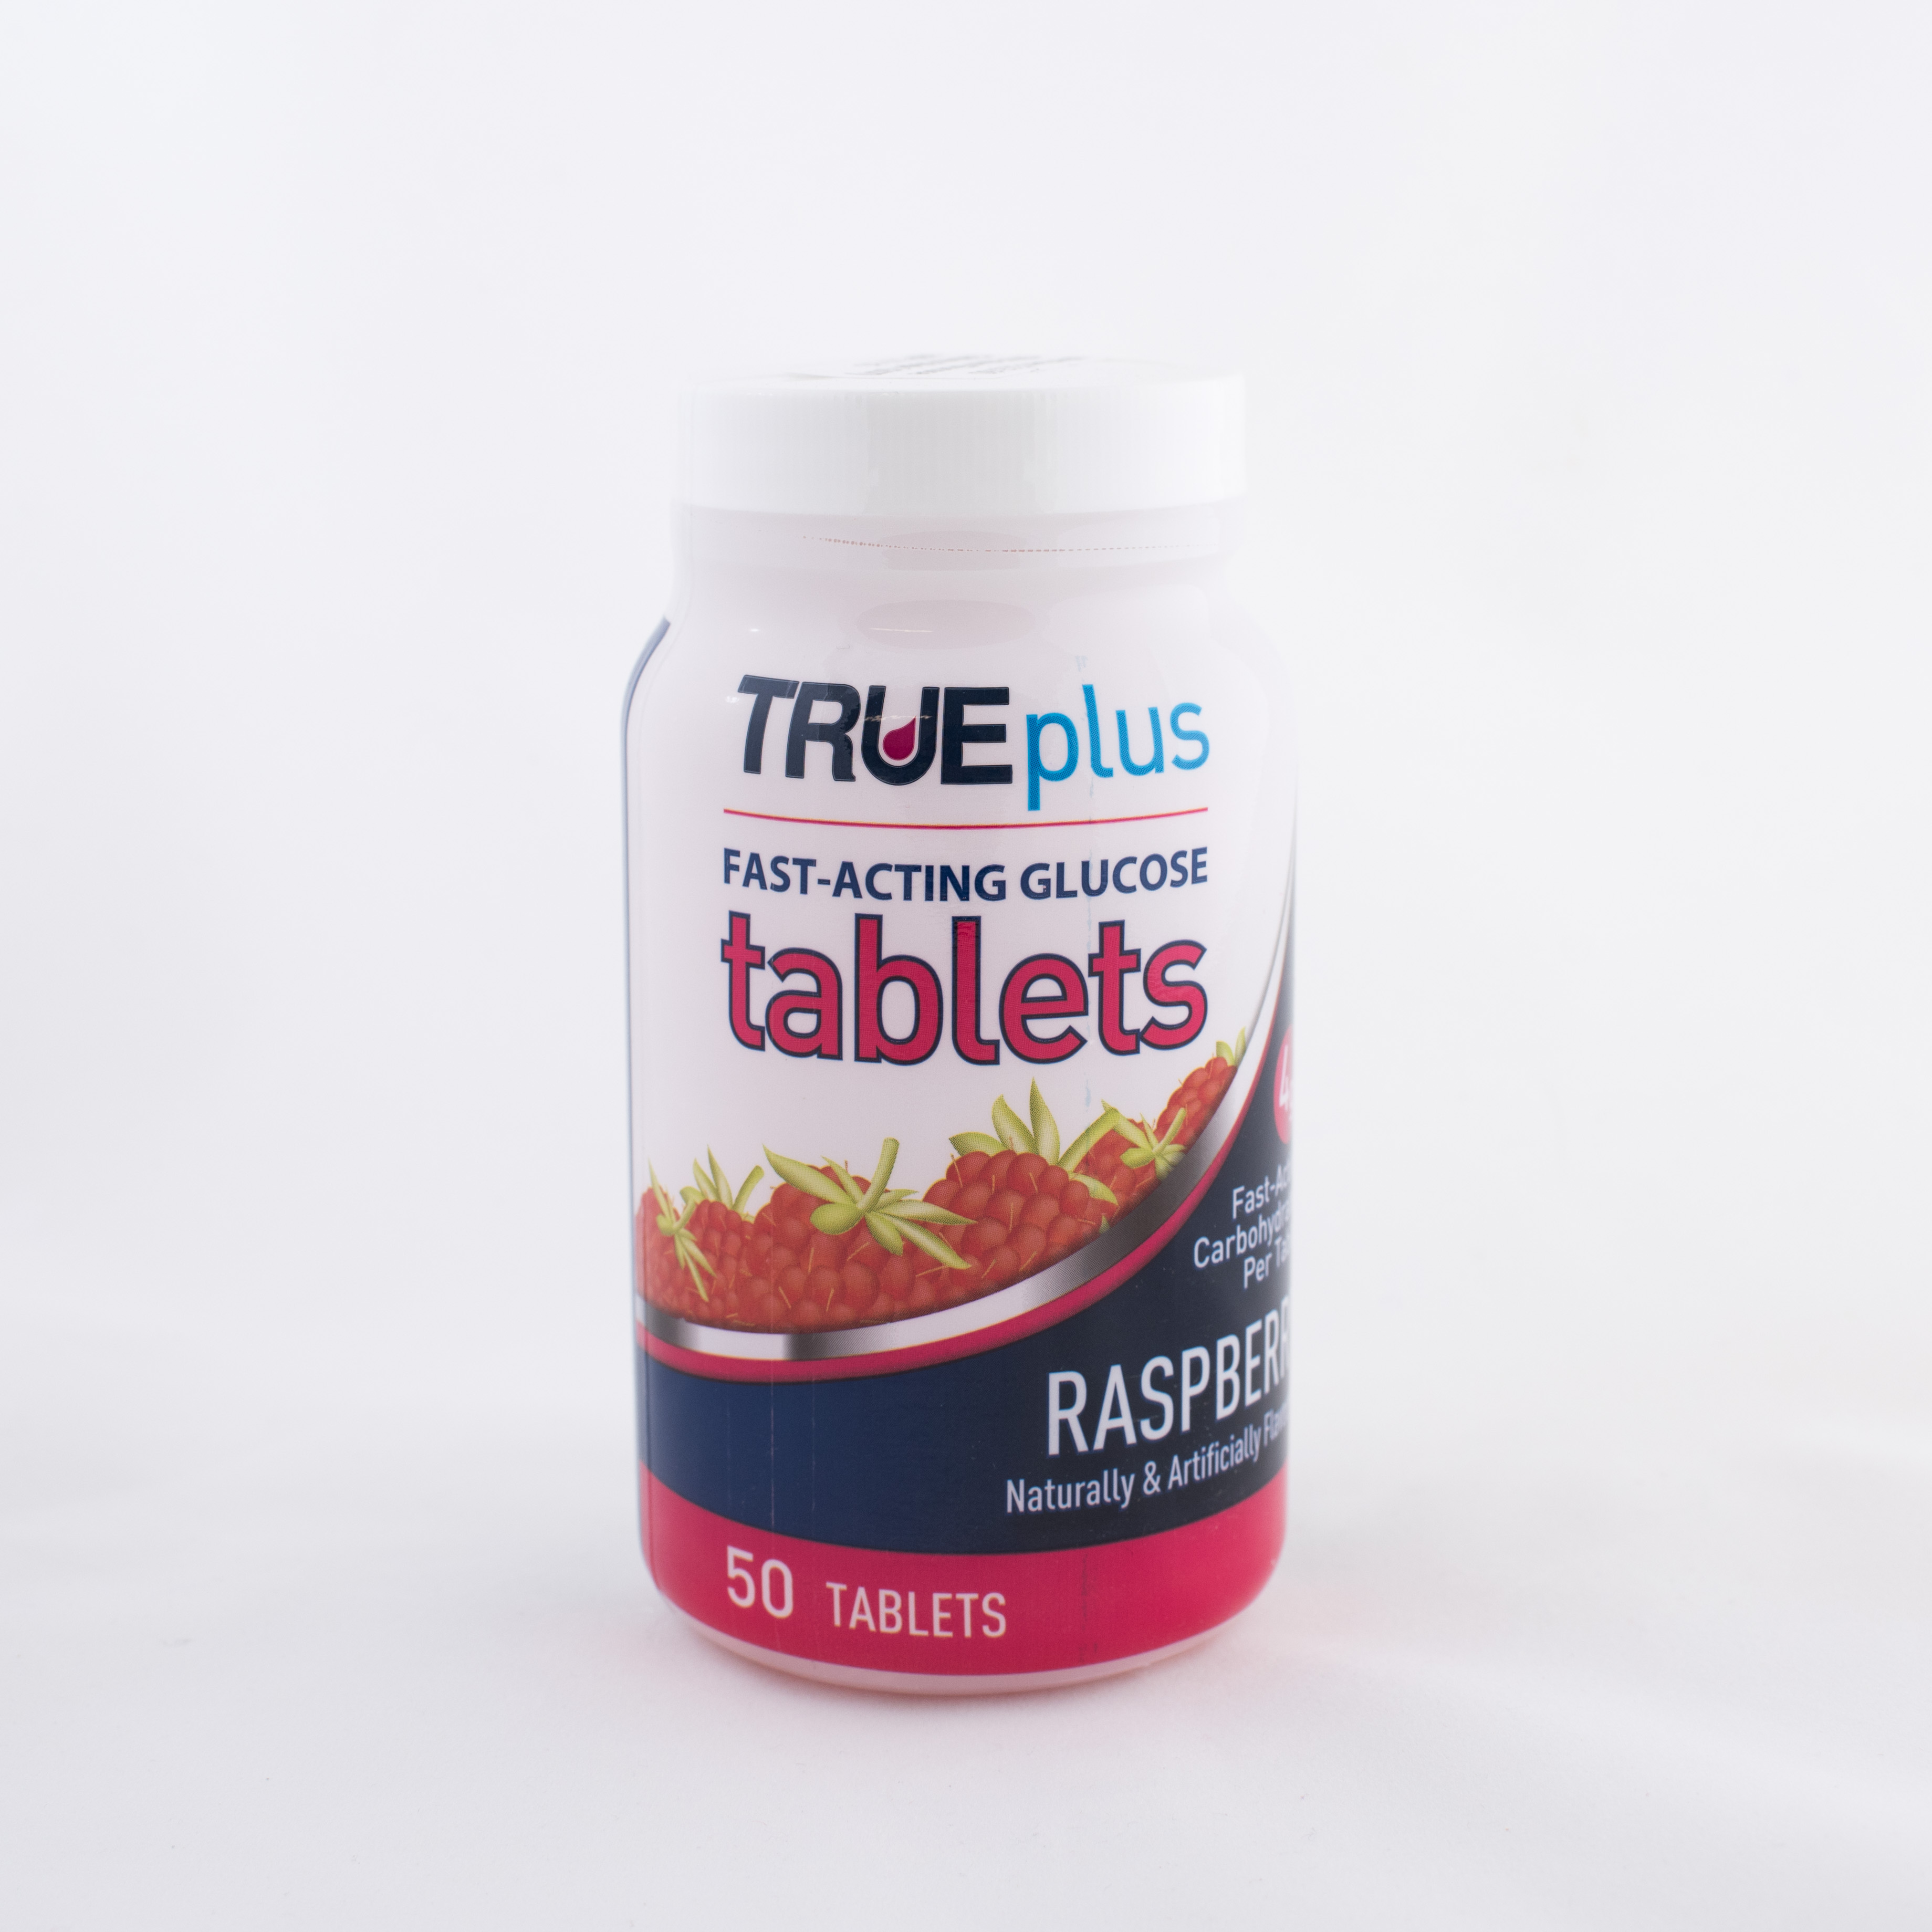 True Plus Glucose Tablets